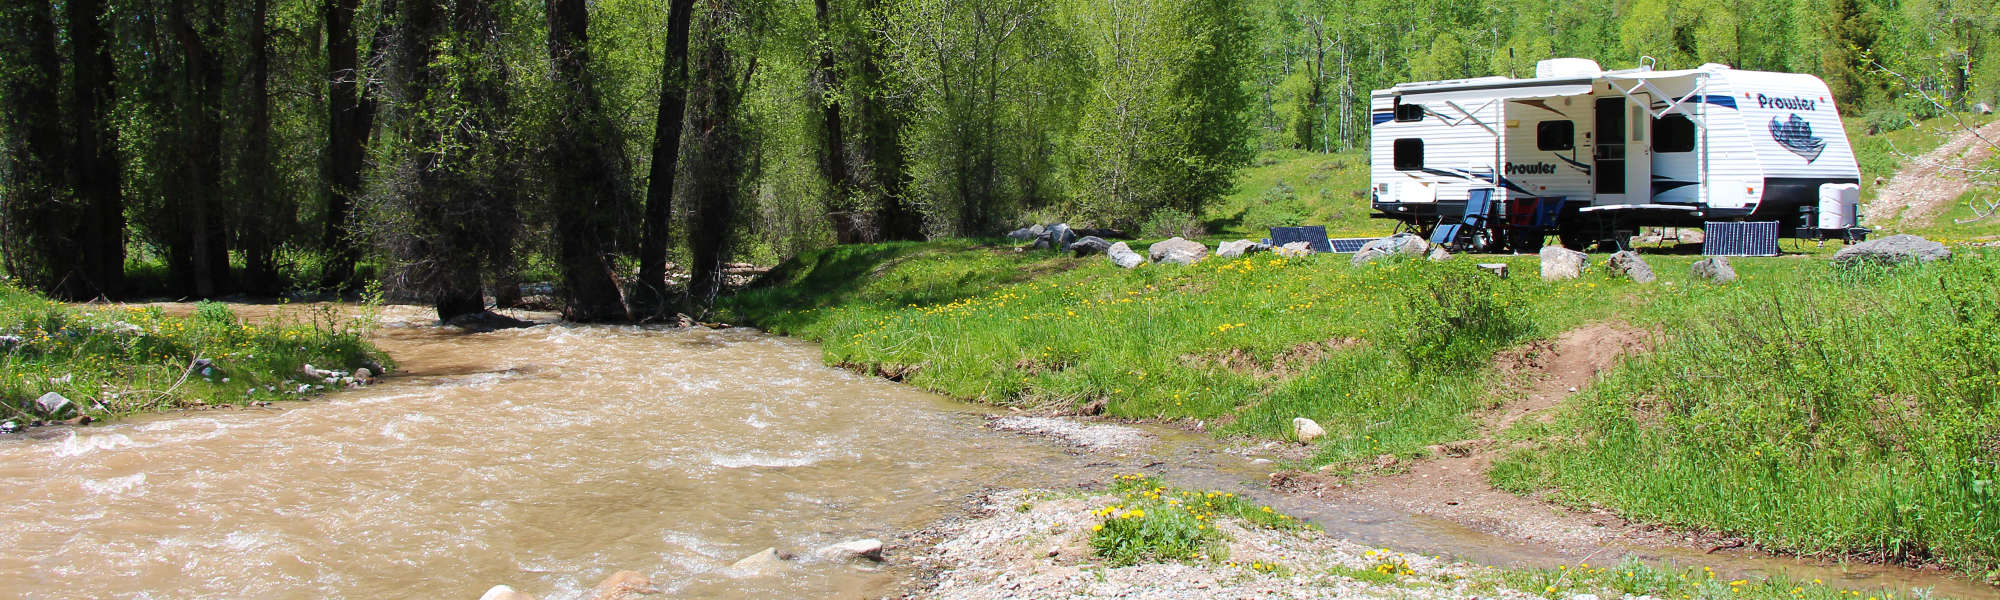 palisades-idaho-forest-road-281-camping-review-info